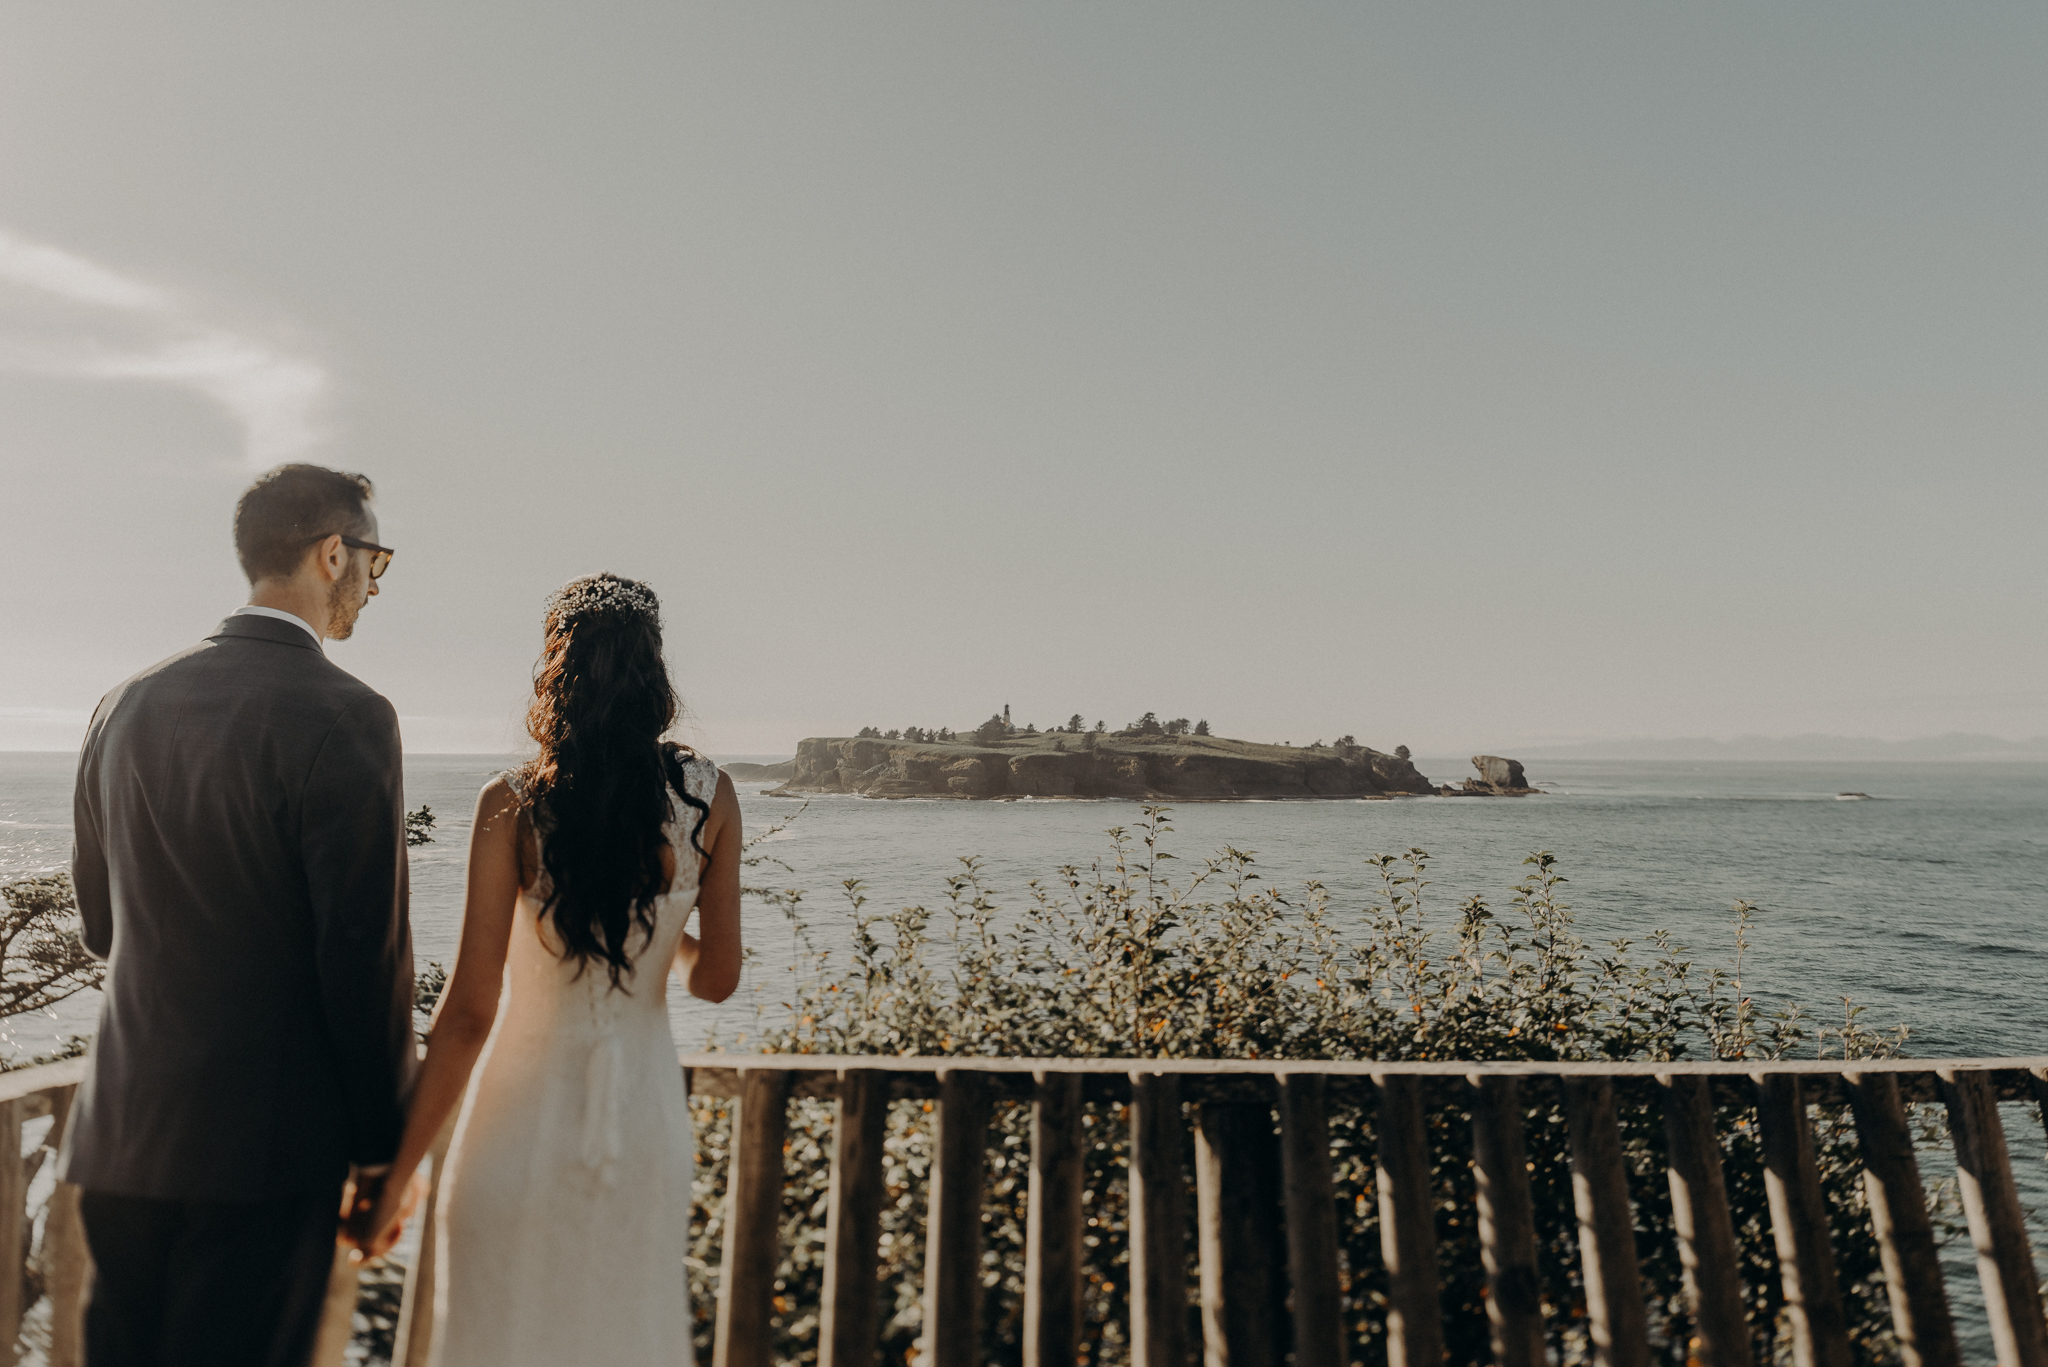 Isaiah + Taylor Photography - Cape Flattery Elopement, Olympia National Forest Wedding Photographer-068.jpg